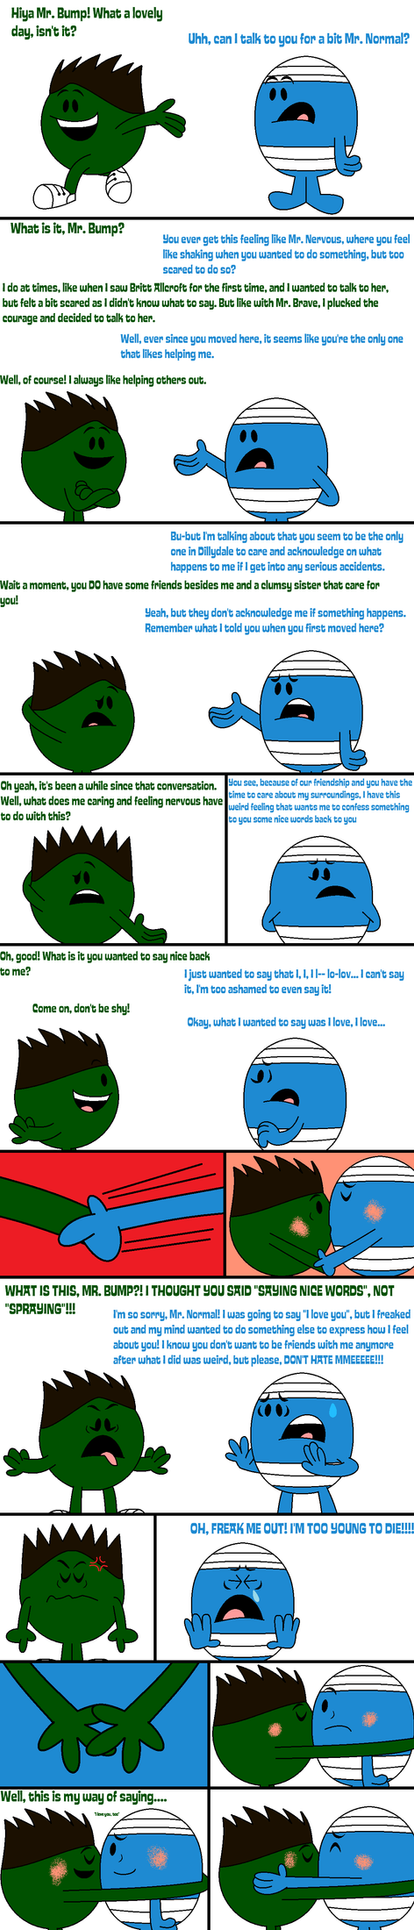 Mr. Bump's confession to Mr. Normal by Percyfan94